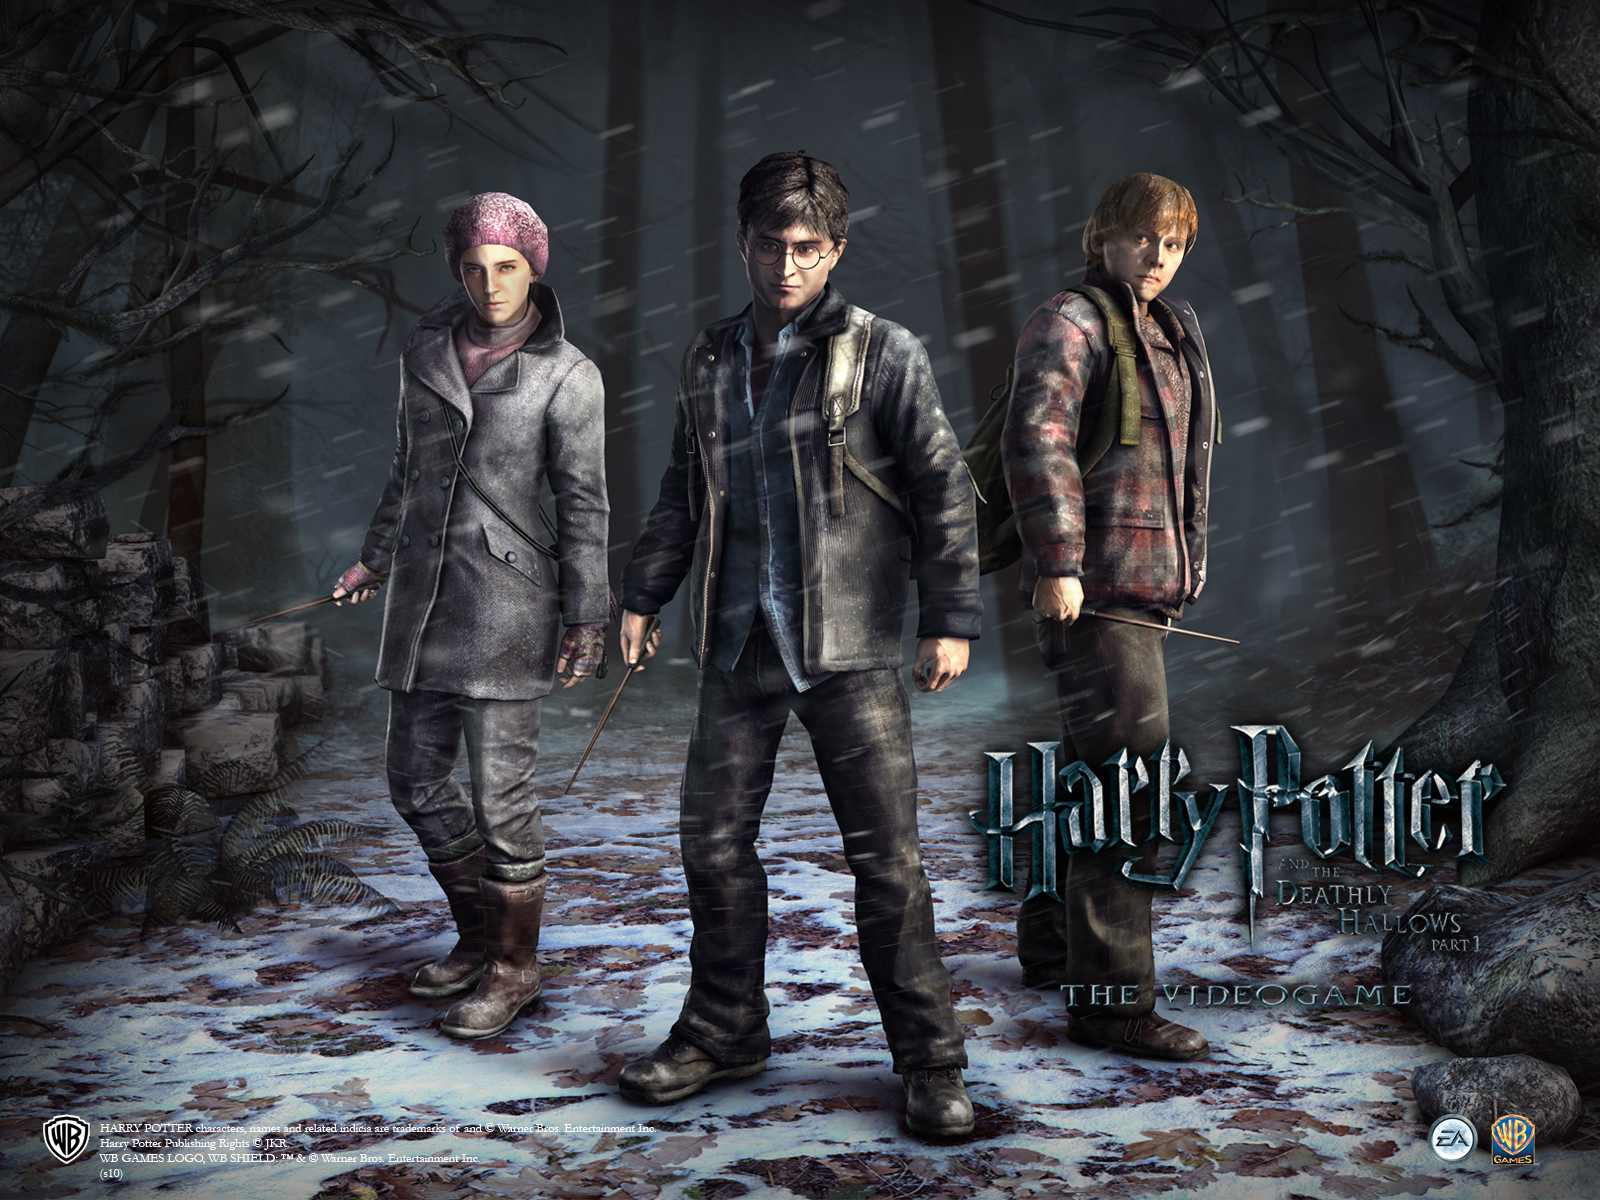 Harry Potter And The Deathly Hallows Walkthrough Video Guide Wii Xbox 360 Ps3 Pc Video Games Blogger